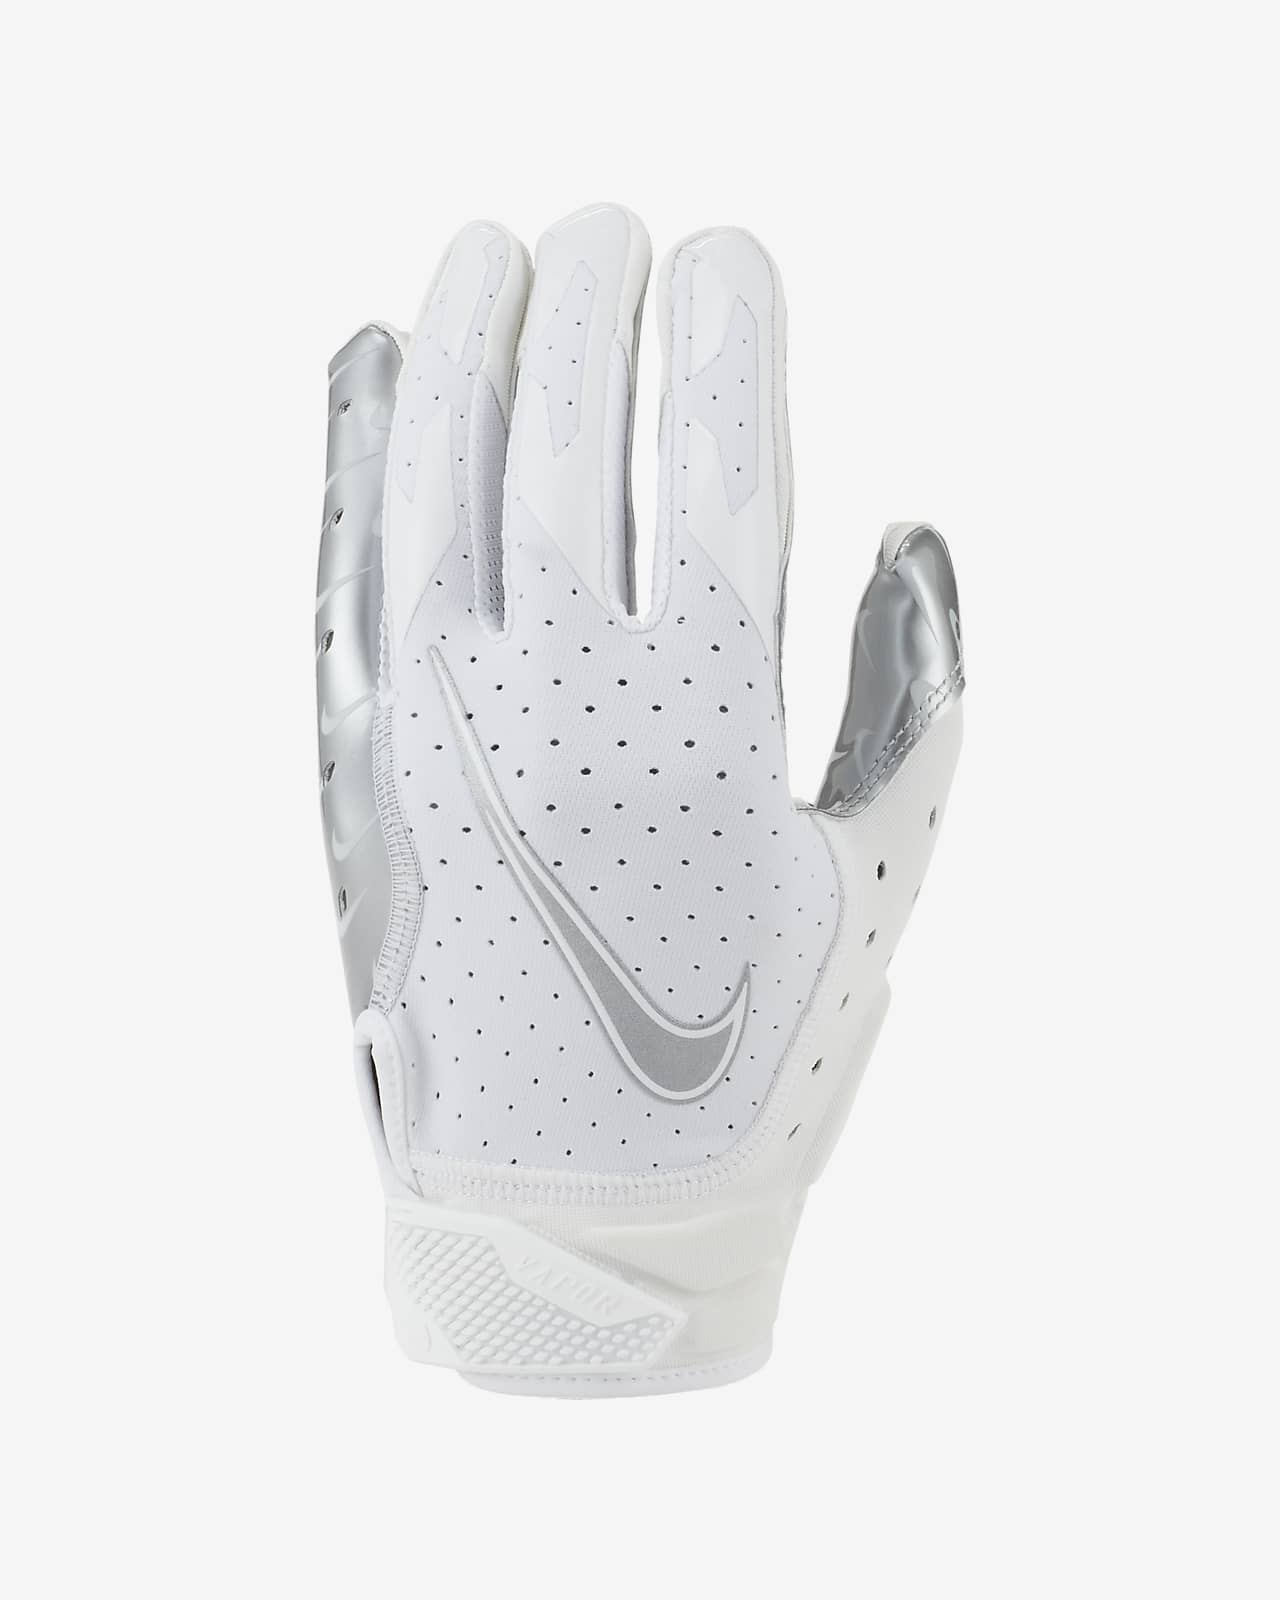 Nike Vapor Jet 6.0 Men's Football Gloves